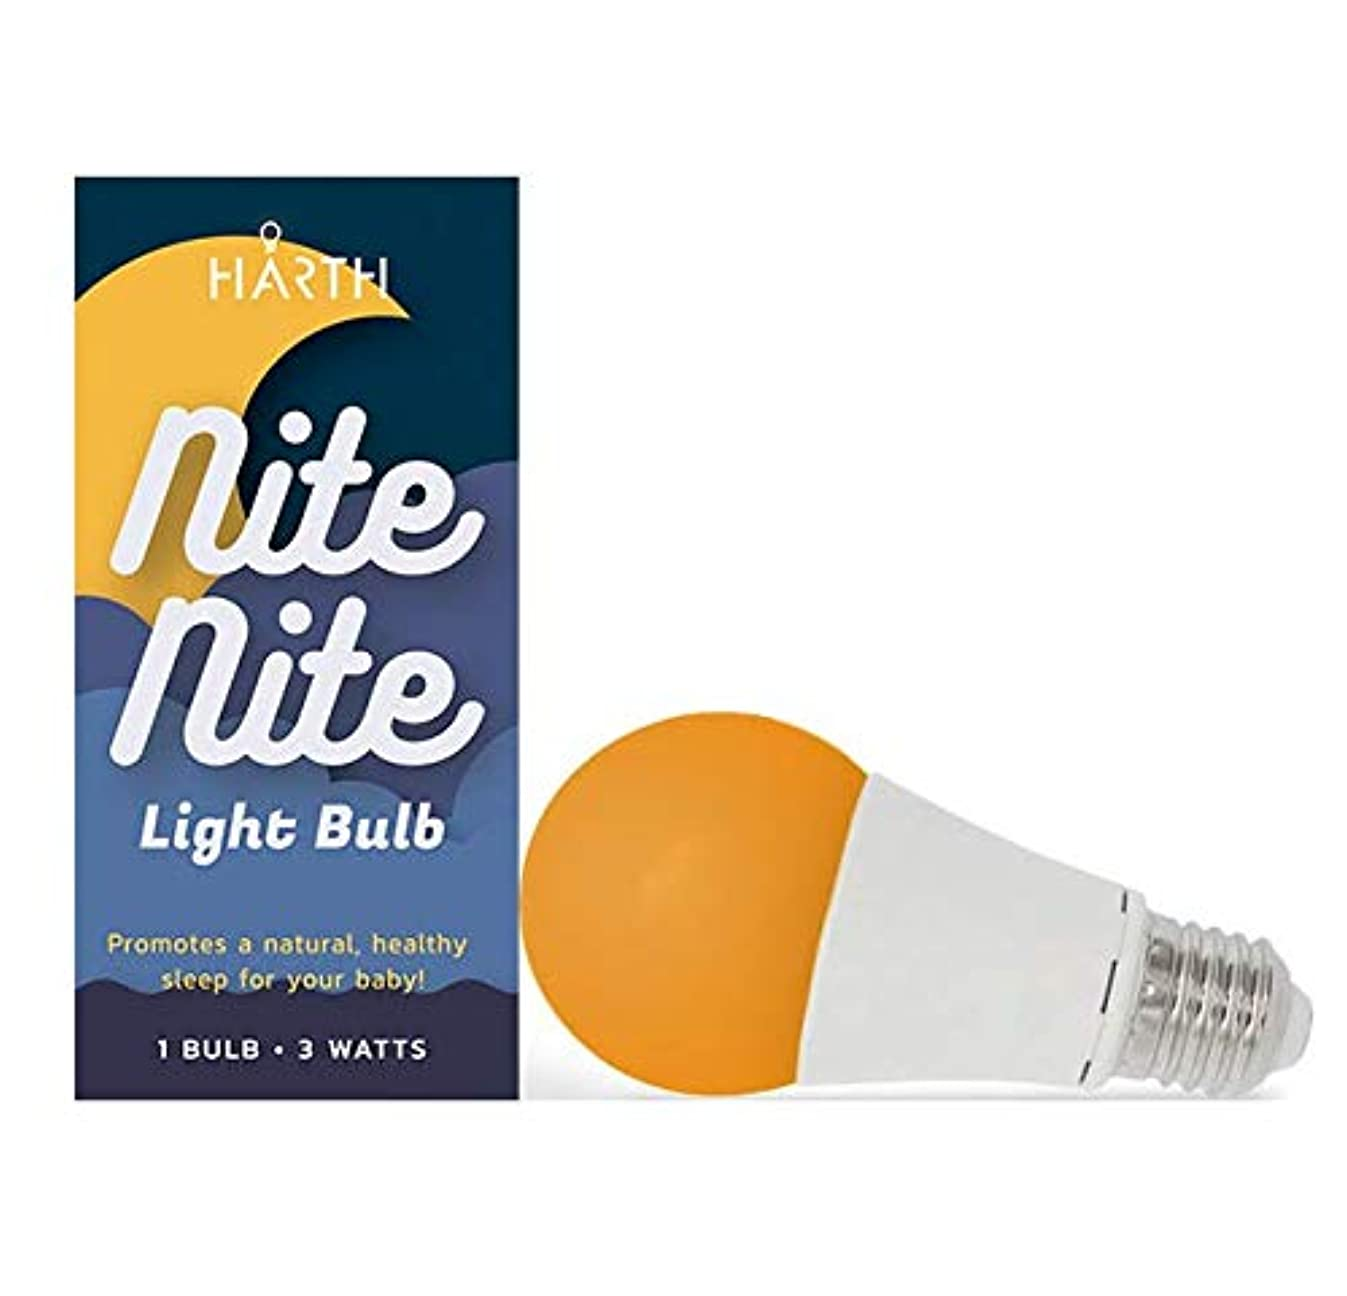 Nite-Nite Light Bulb. Natural Baby Sleep Aid. Promotes Healthy Sleeping Habits for Baby and Mother | Certified by The National Parenting Center.